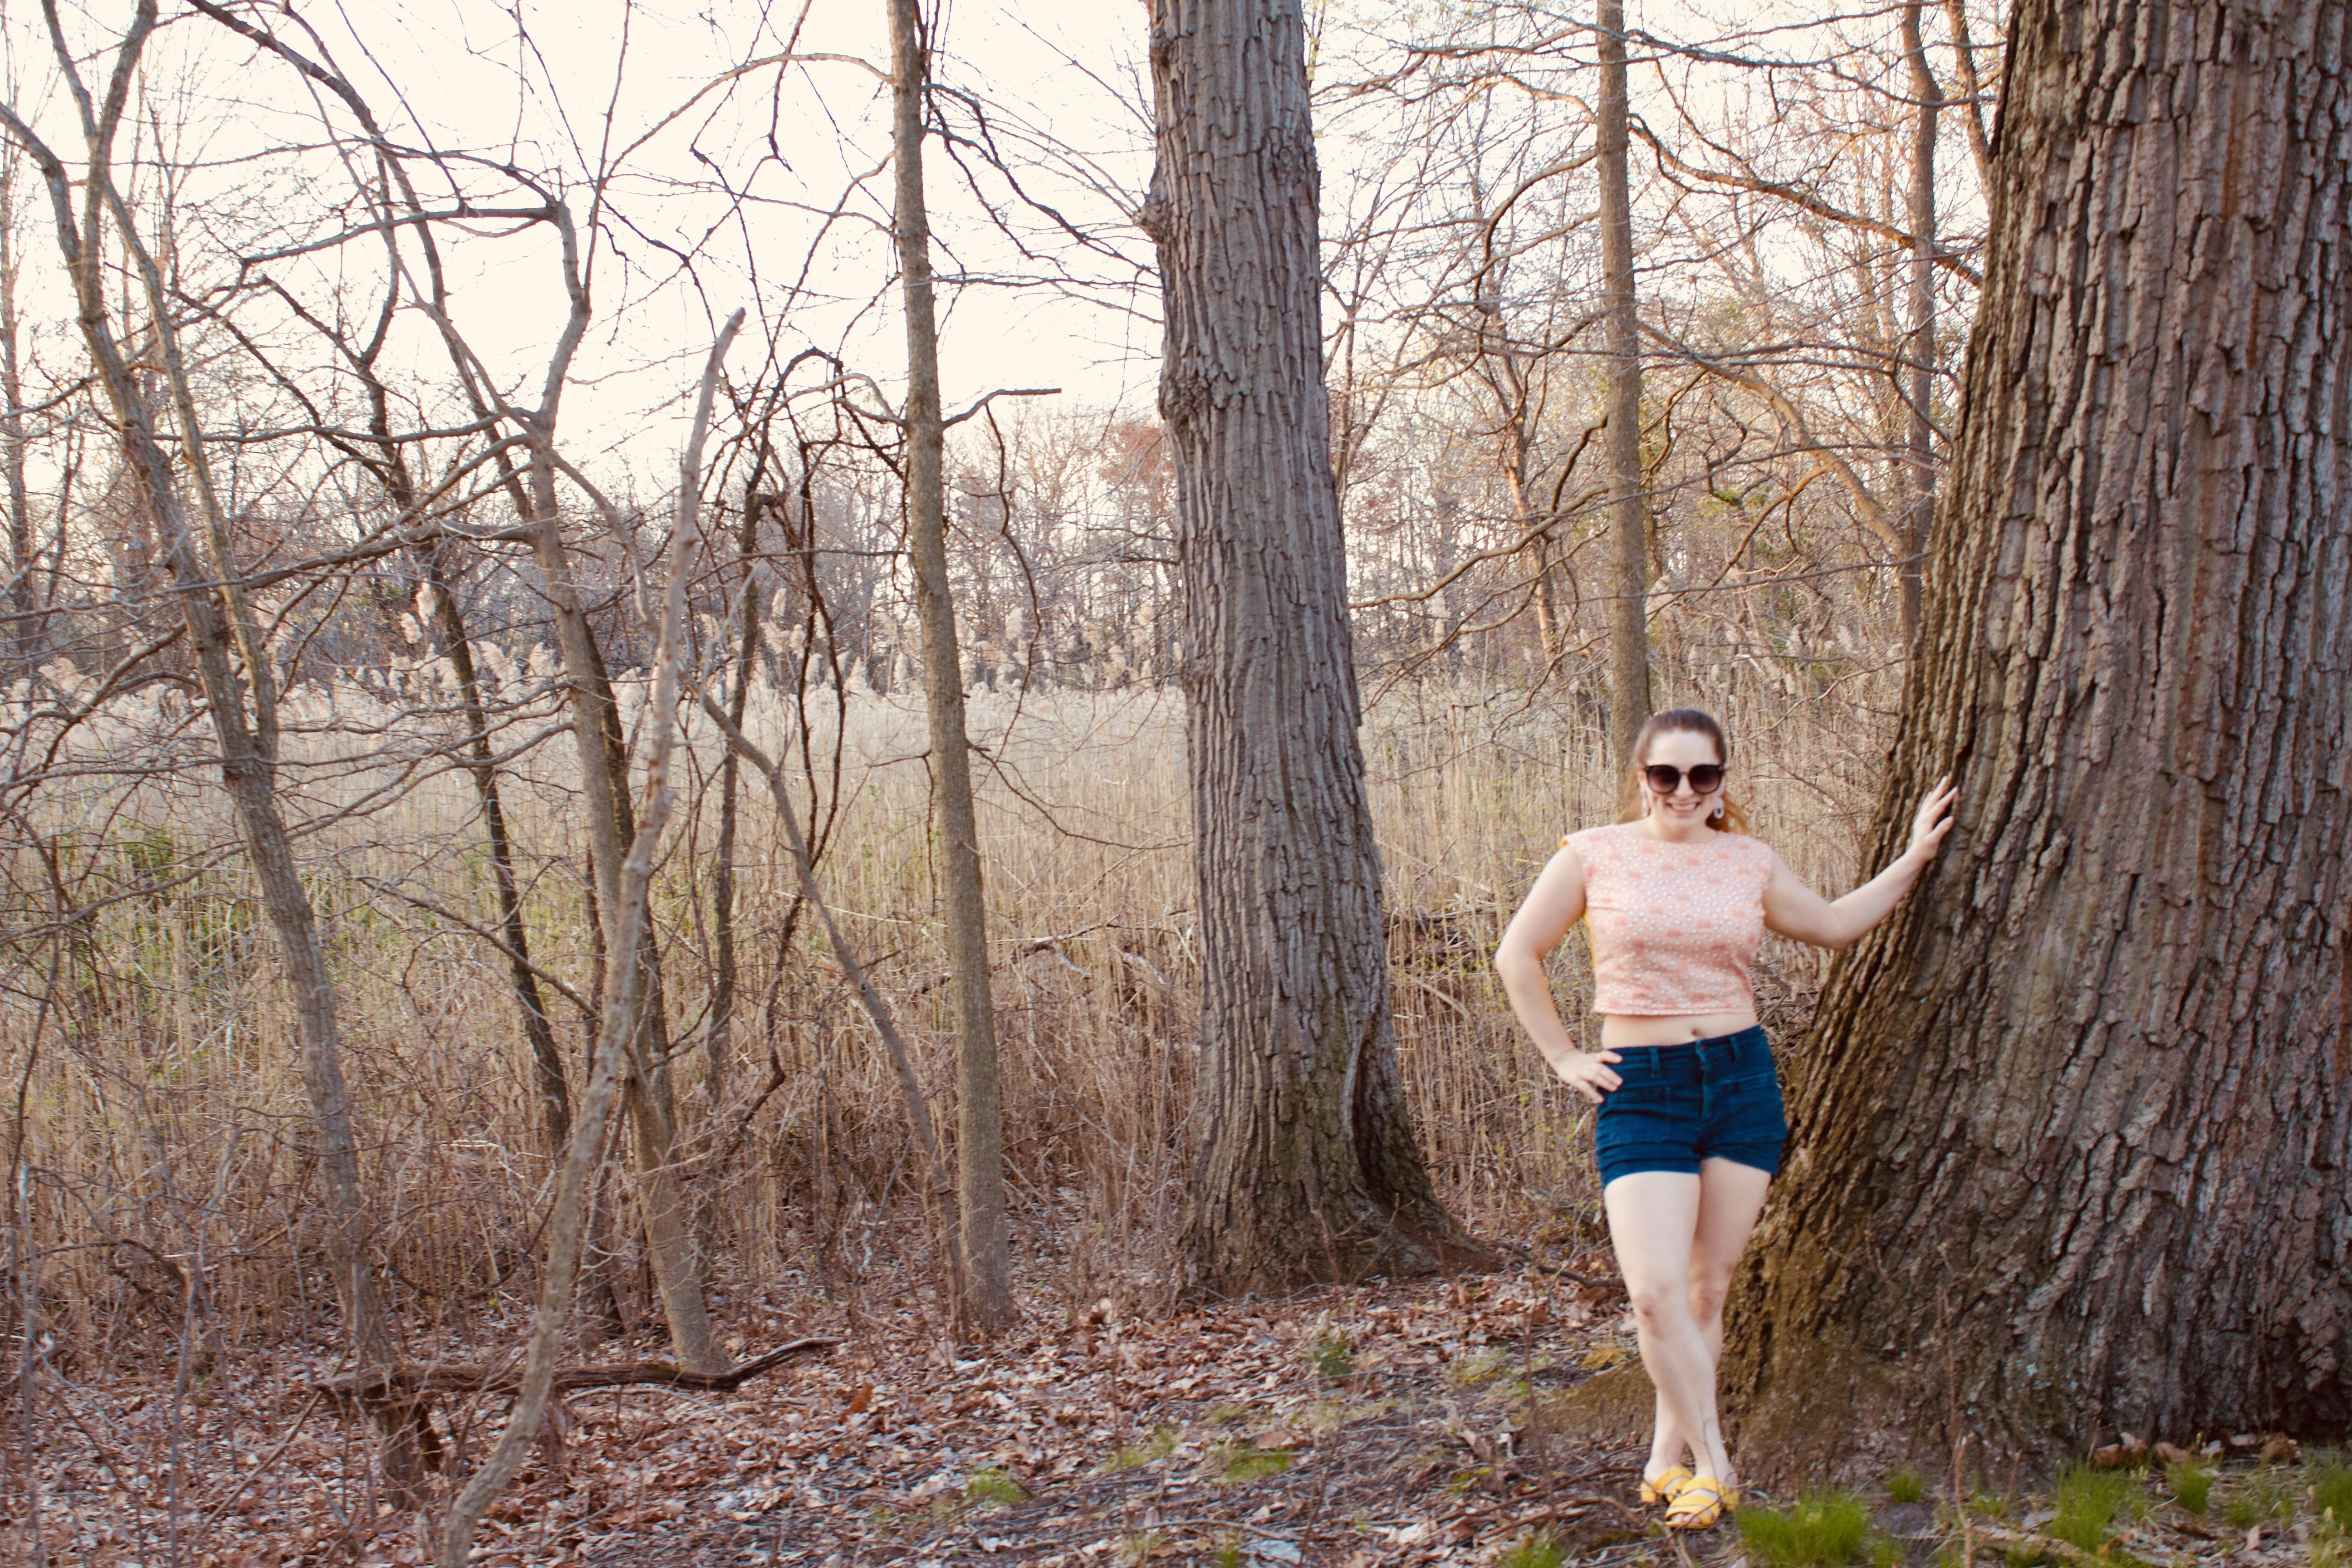 A person leans against a tree while wearing a pink crop top, and denim shorts.